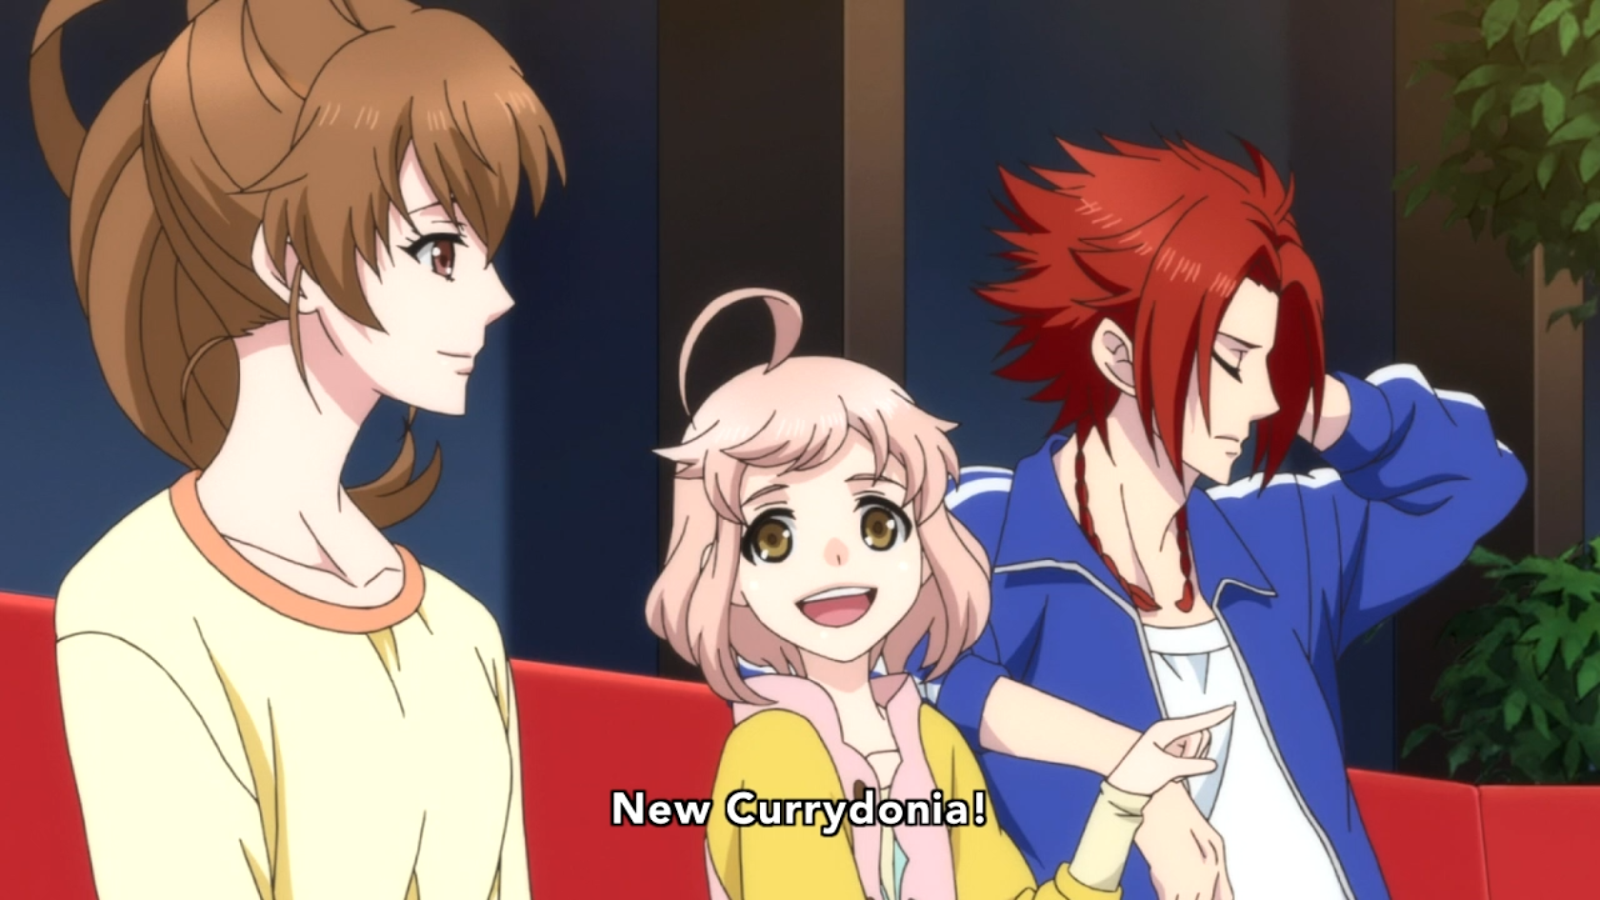 Brothers Conflict Episode  The Obligatory School Festival Episode Tranny San In Male Clothing  E  A